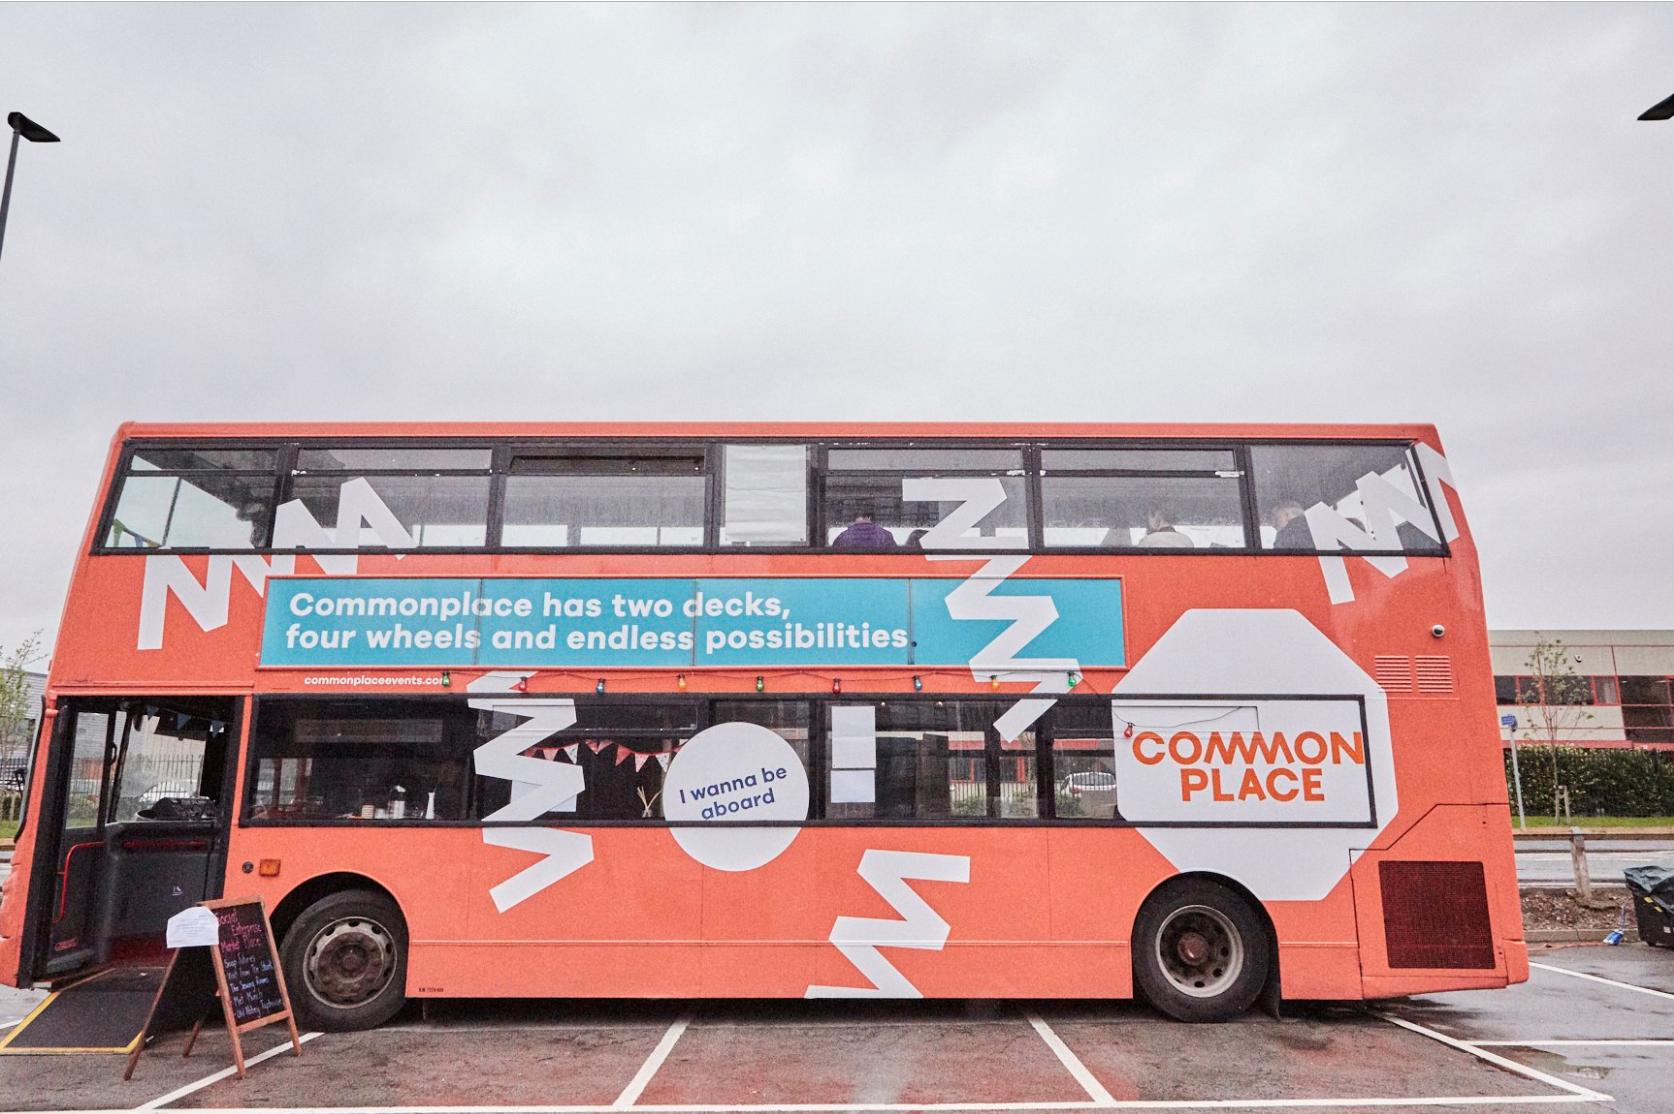 Wednesday 23 January 2019 - Talk about experiential, this week you can hop aboard the Common Place double-decker bus and discover what it takes to run your own foodie venture with 4lunch's Recipe for Success event with Heart & Parcel.An event for an aspiring chefs, entrepreneurs and community projects in Manchester, Amy Win from 4lunch, a social enterprise that delivers cookery classes, food business training and catering, will be speaking with Karolina & Clare, of Heart & Parcel, a project bringing migrant women together and helping them improve their English through the making of delicious dumplings from around the world.Ticket includes delicious dumplings courtesy of Heart & ParcelYou can find about 4lunch's event series with Nasi Lemak, and Ancoats Vietnamese street-food connoisseurs NAM here.